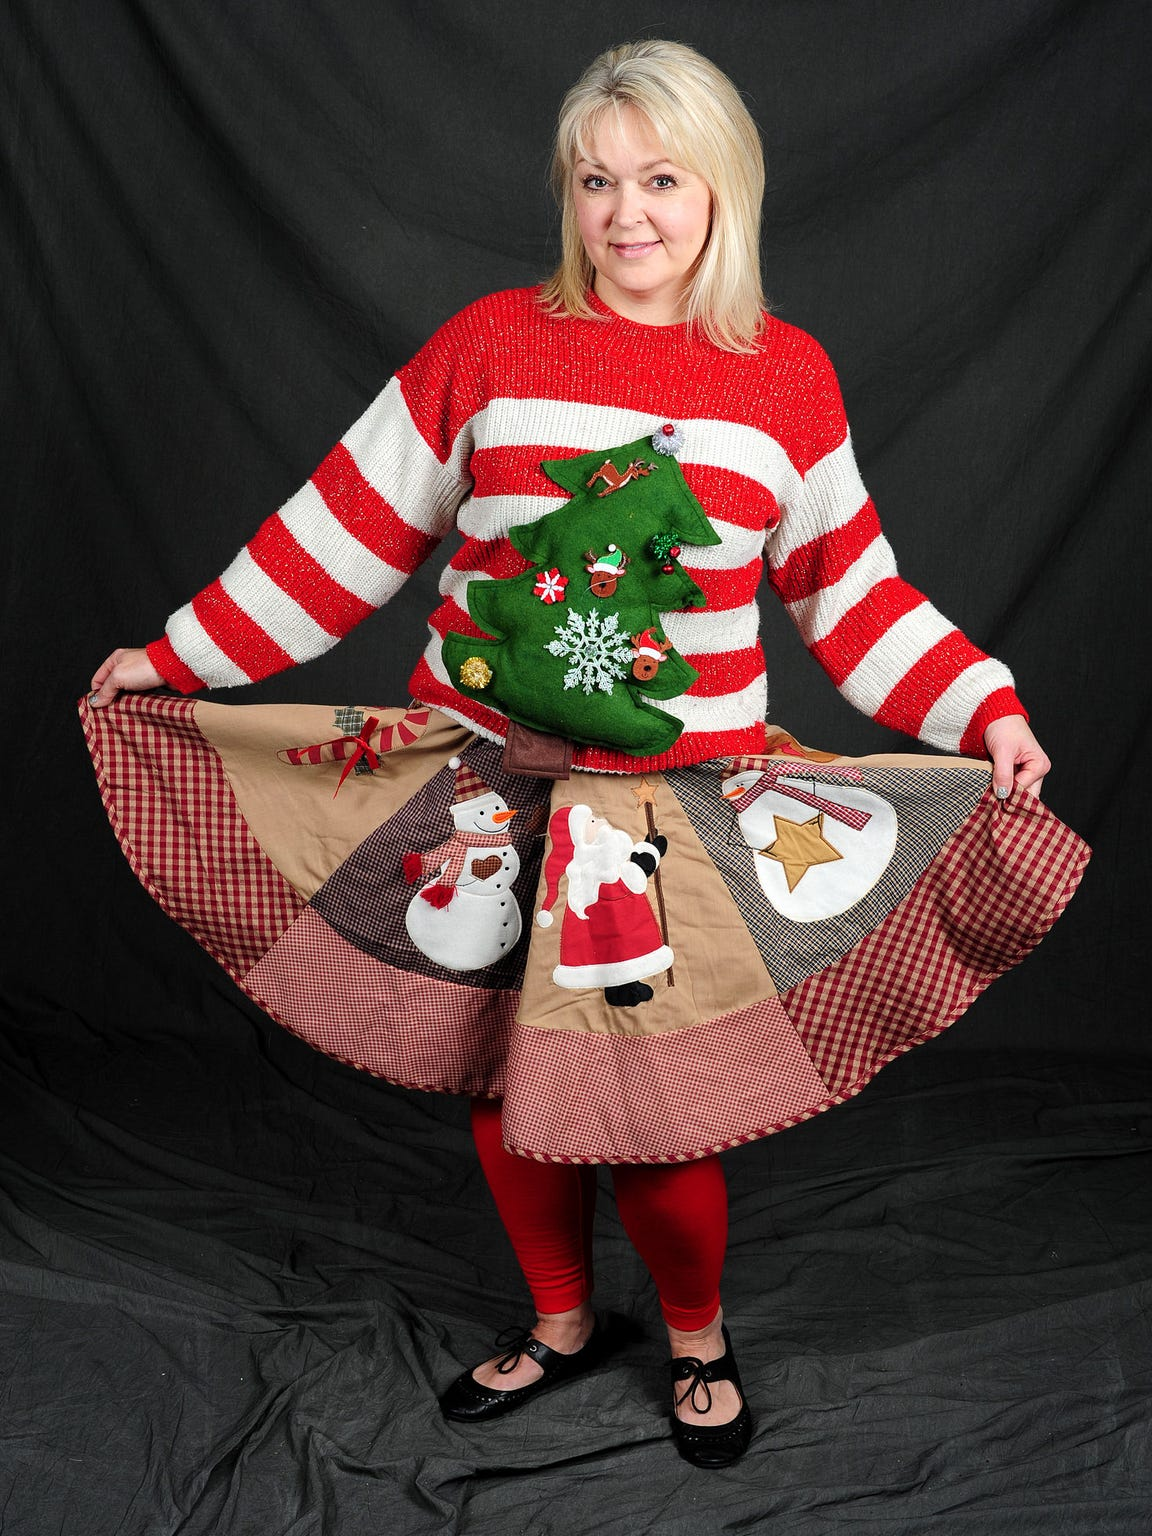 Cindy Hall made this ugly Christmas sweater. It has